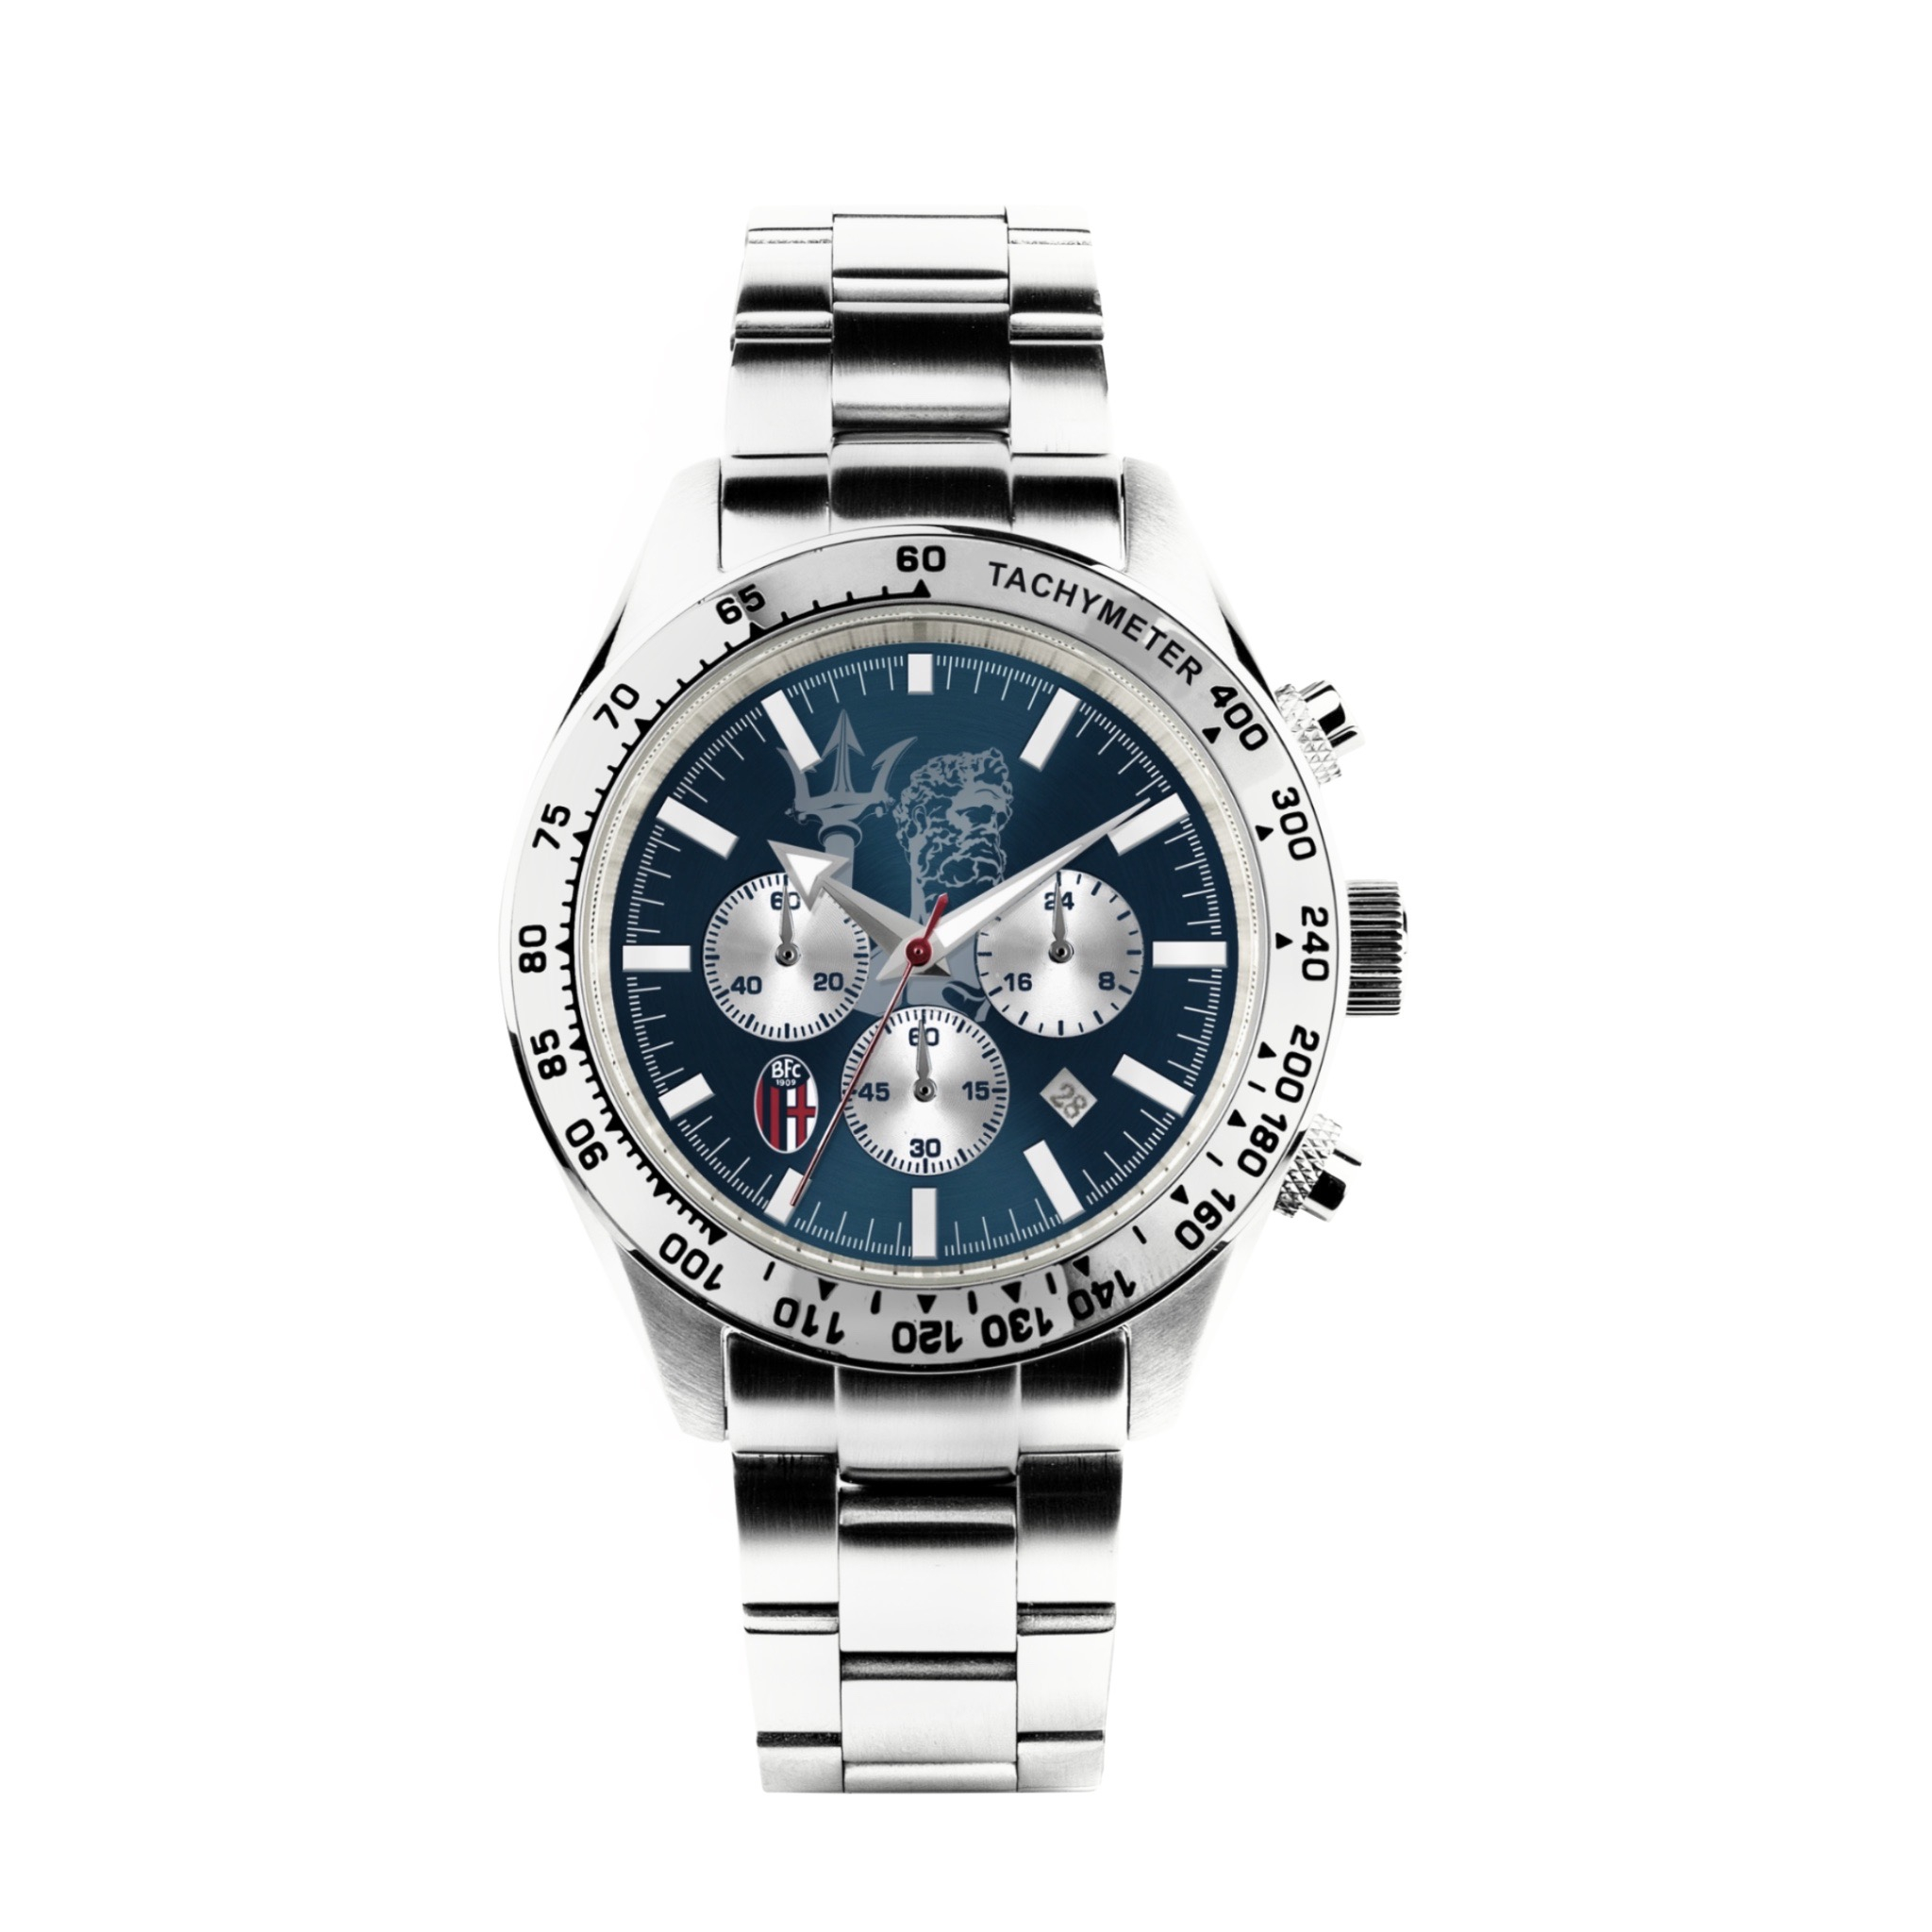 LIMITED EDITION CHRONO